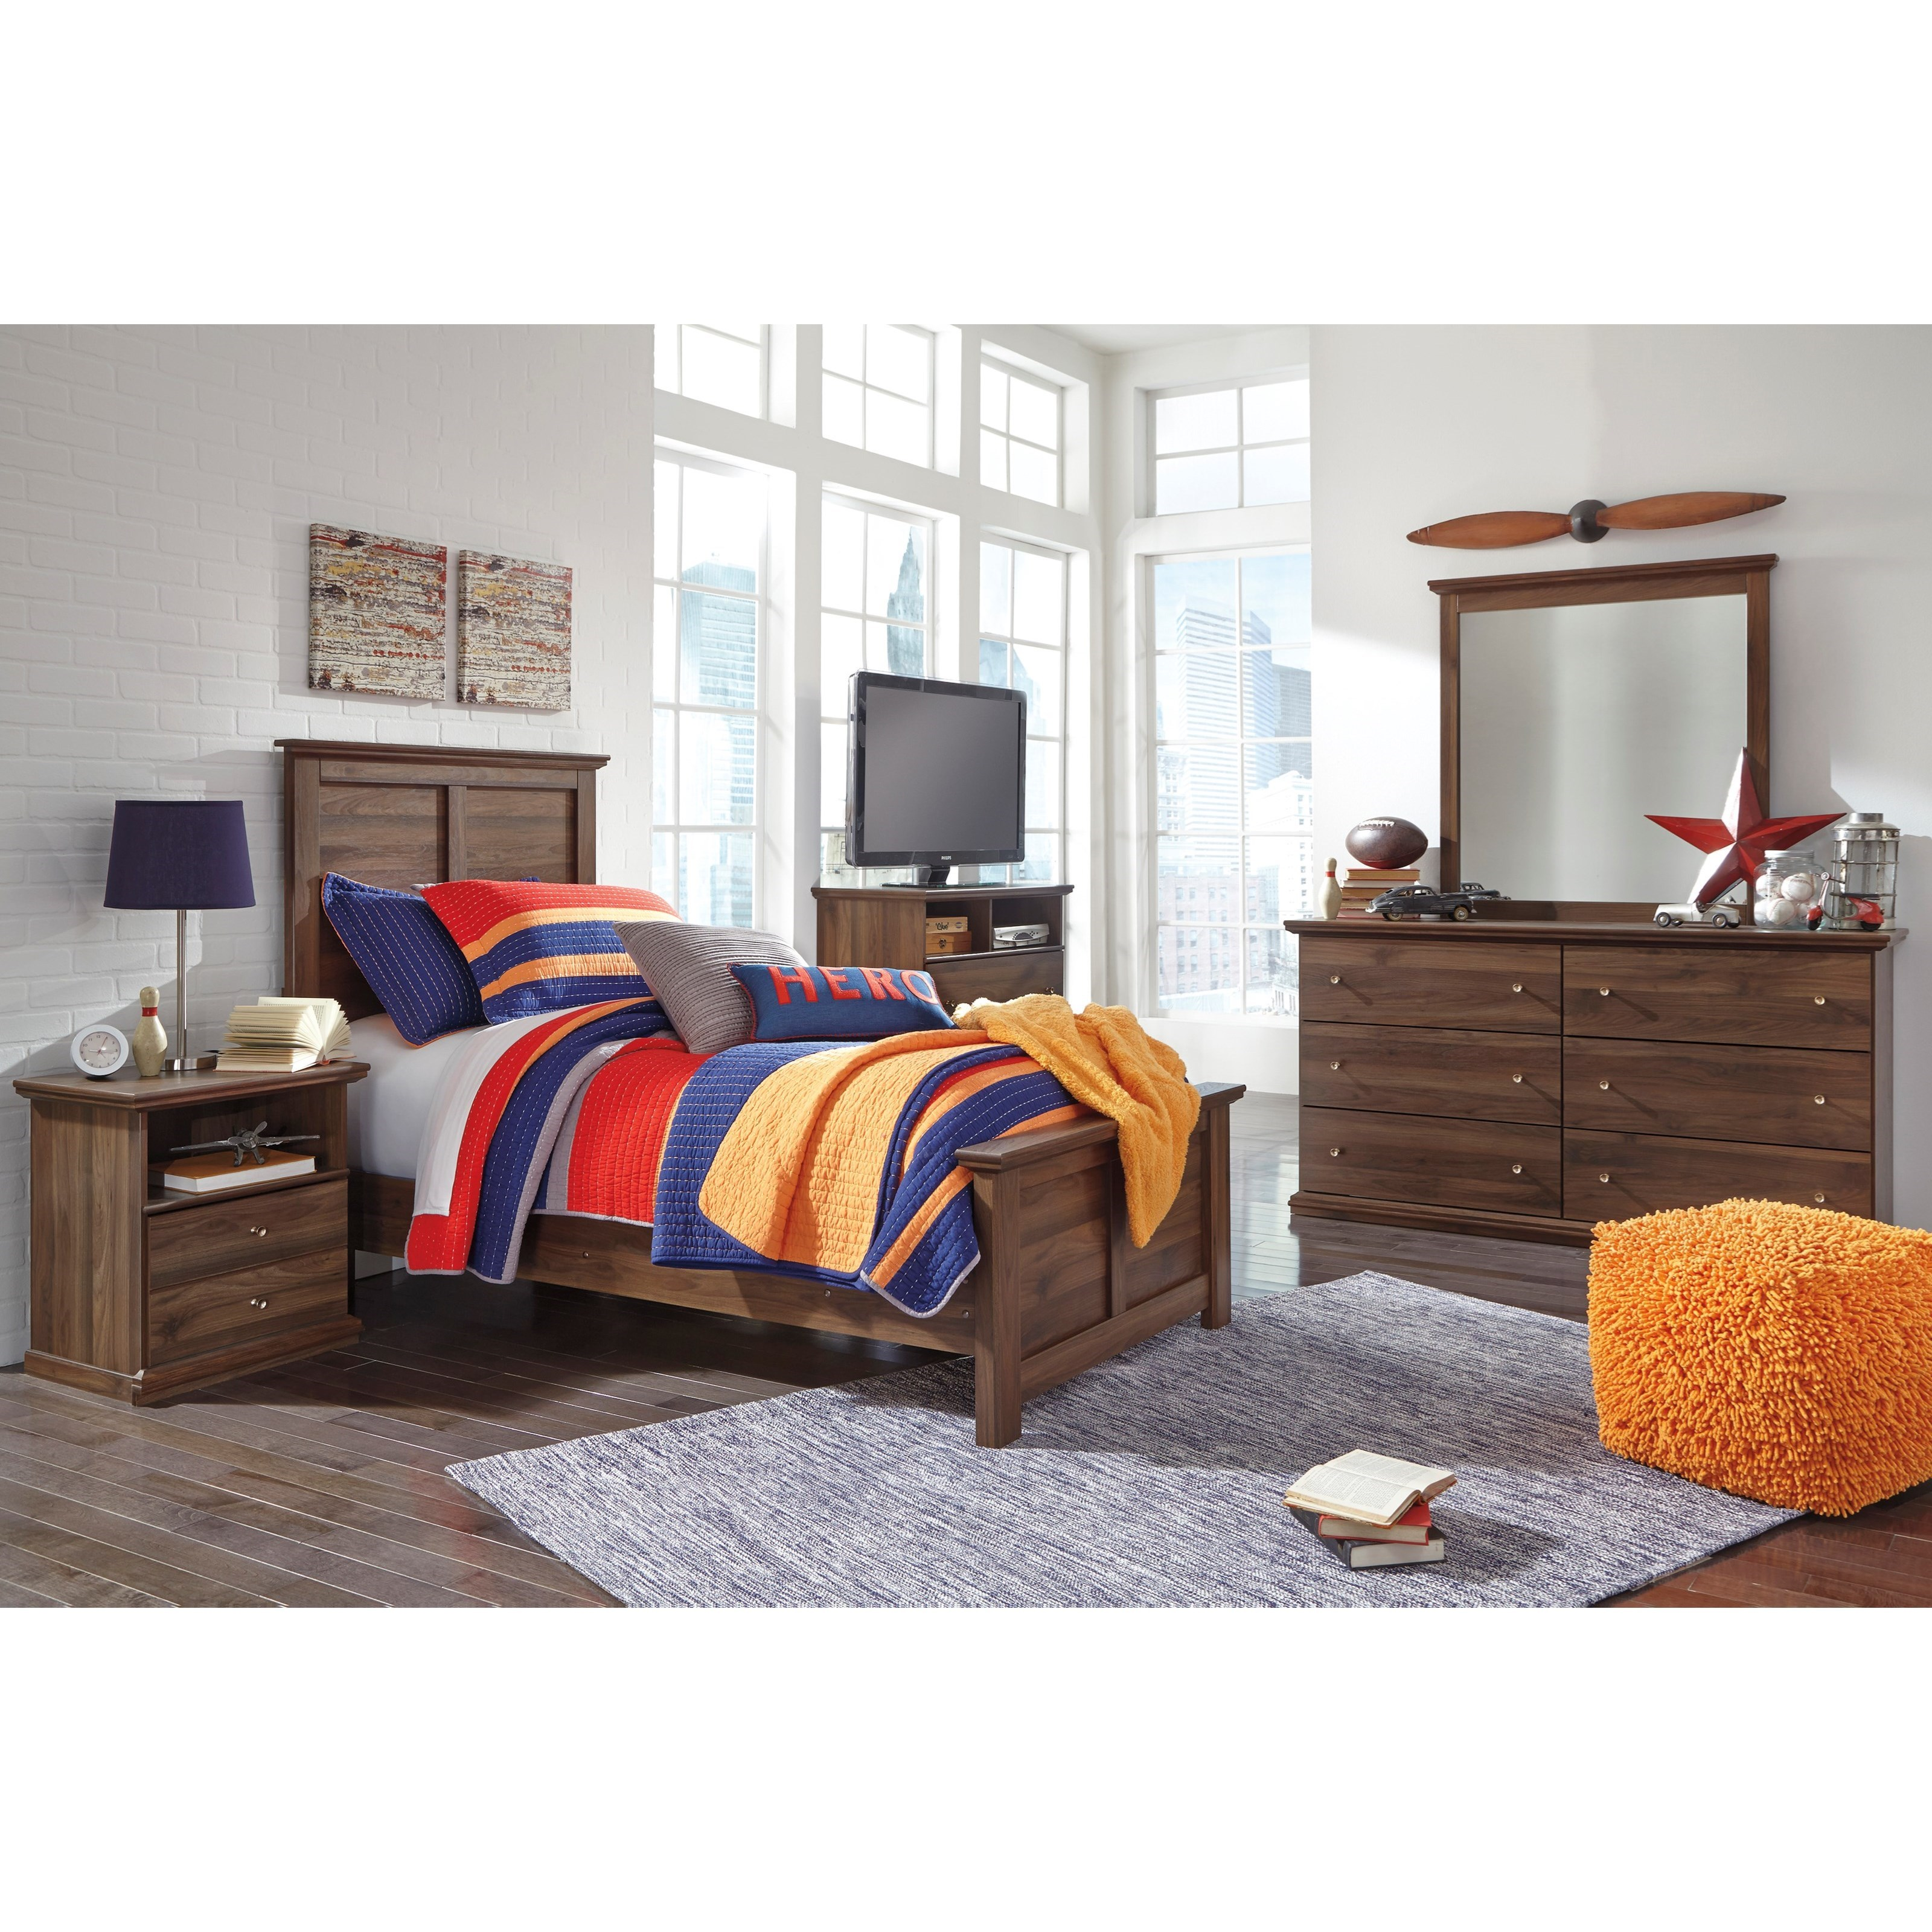 Signature Design by Ashley Burminson Twin Bedroom Group - Item Number: B135 T Bedroom Group 5